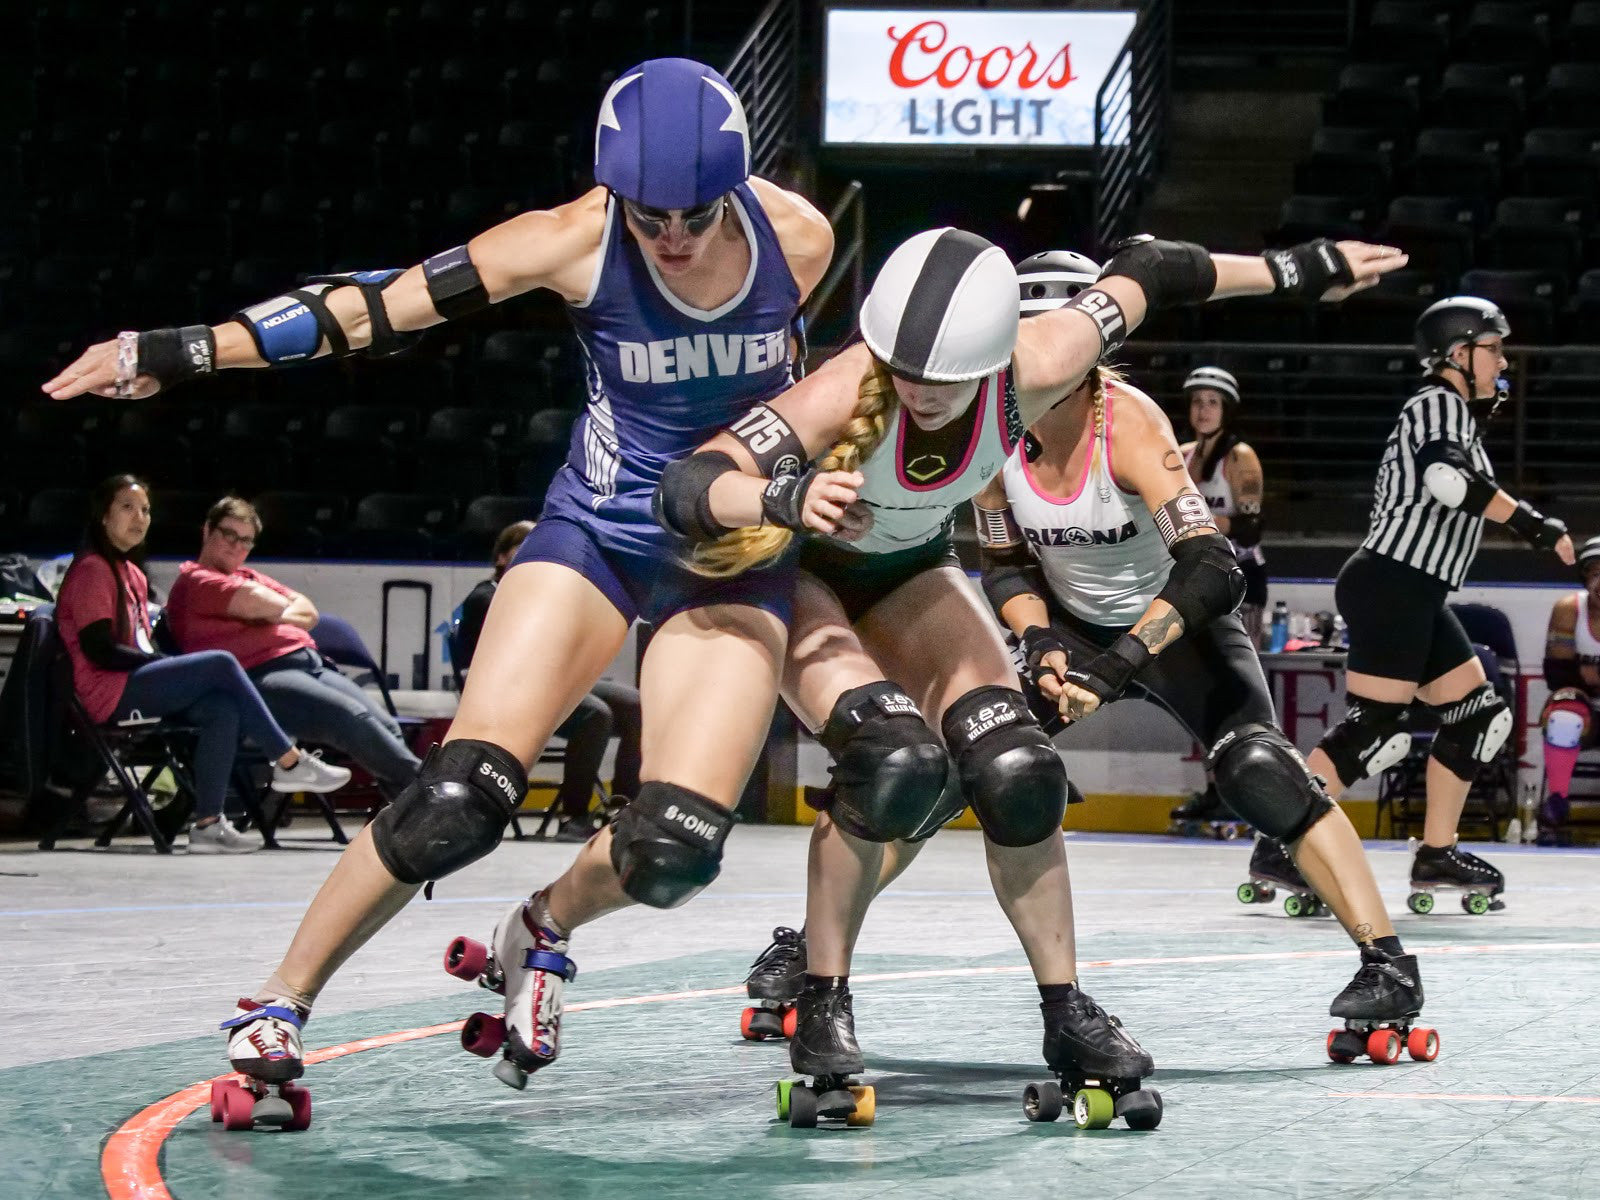 A more recent edit from Anja from a matchup between Denver Roller Derby and Arizona Roller Derby at WFTDA Playoffs in Seattle, 2019. Far less gritty but equally powerful and dramatic with more natural skin tones. If you take a closer look at Denver Roller Derby's jammer Scald Eagle's upper arms, shoulders and legs you see the same display of power & strength in the muscles as in the older edit. We like this new style! ©Anja Wettergren